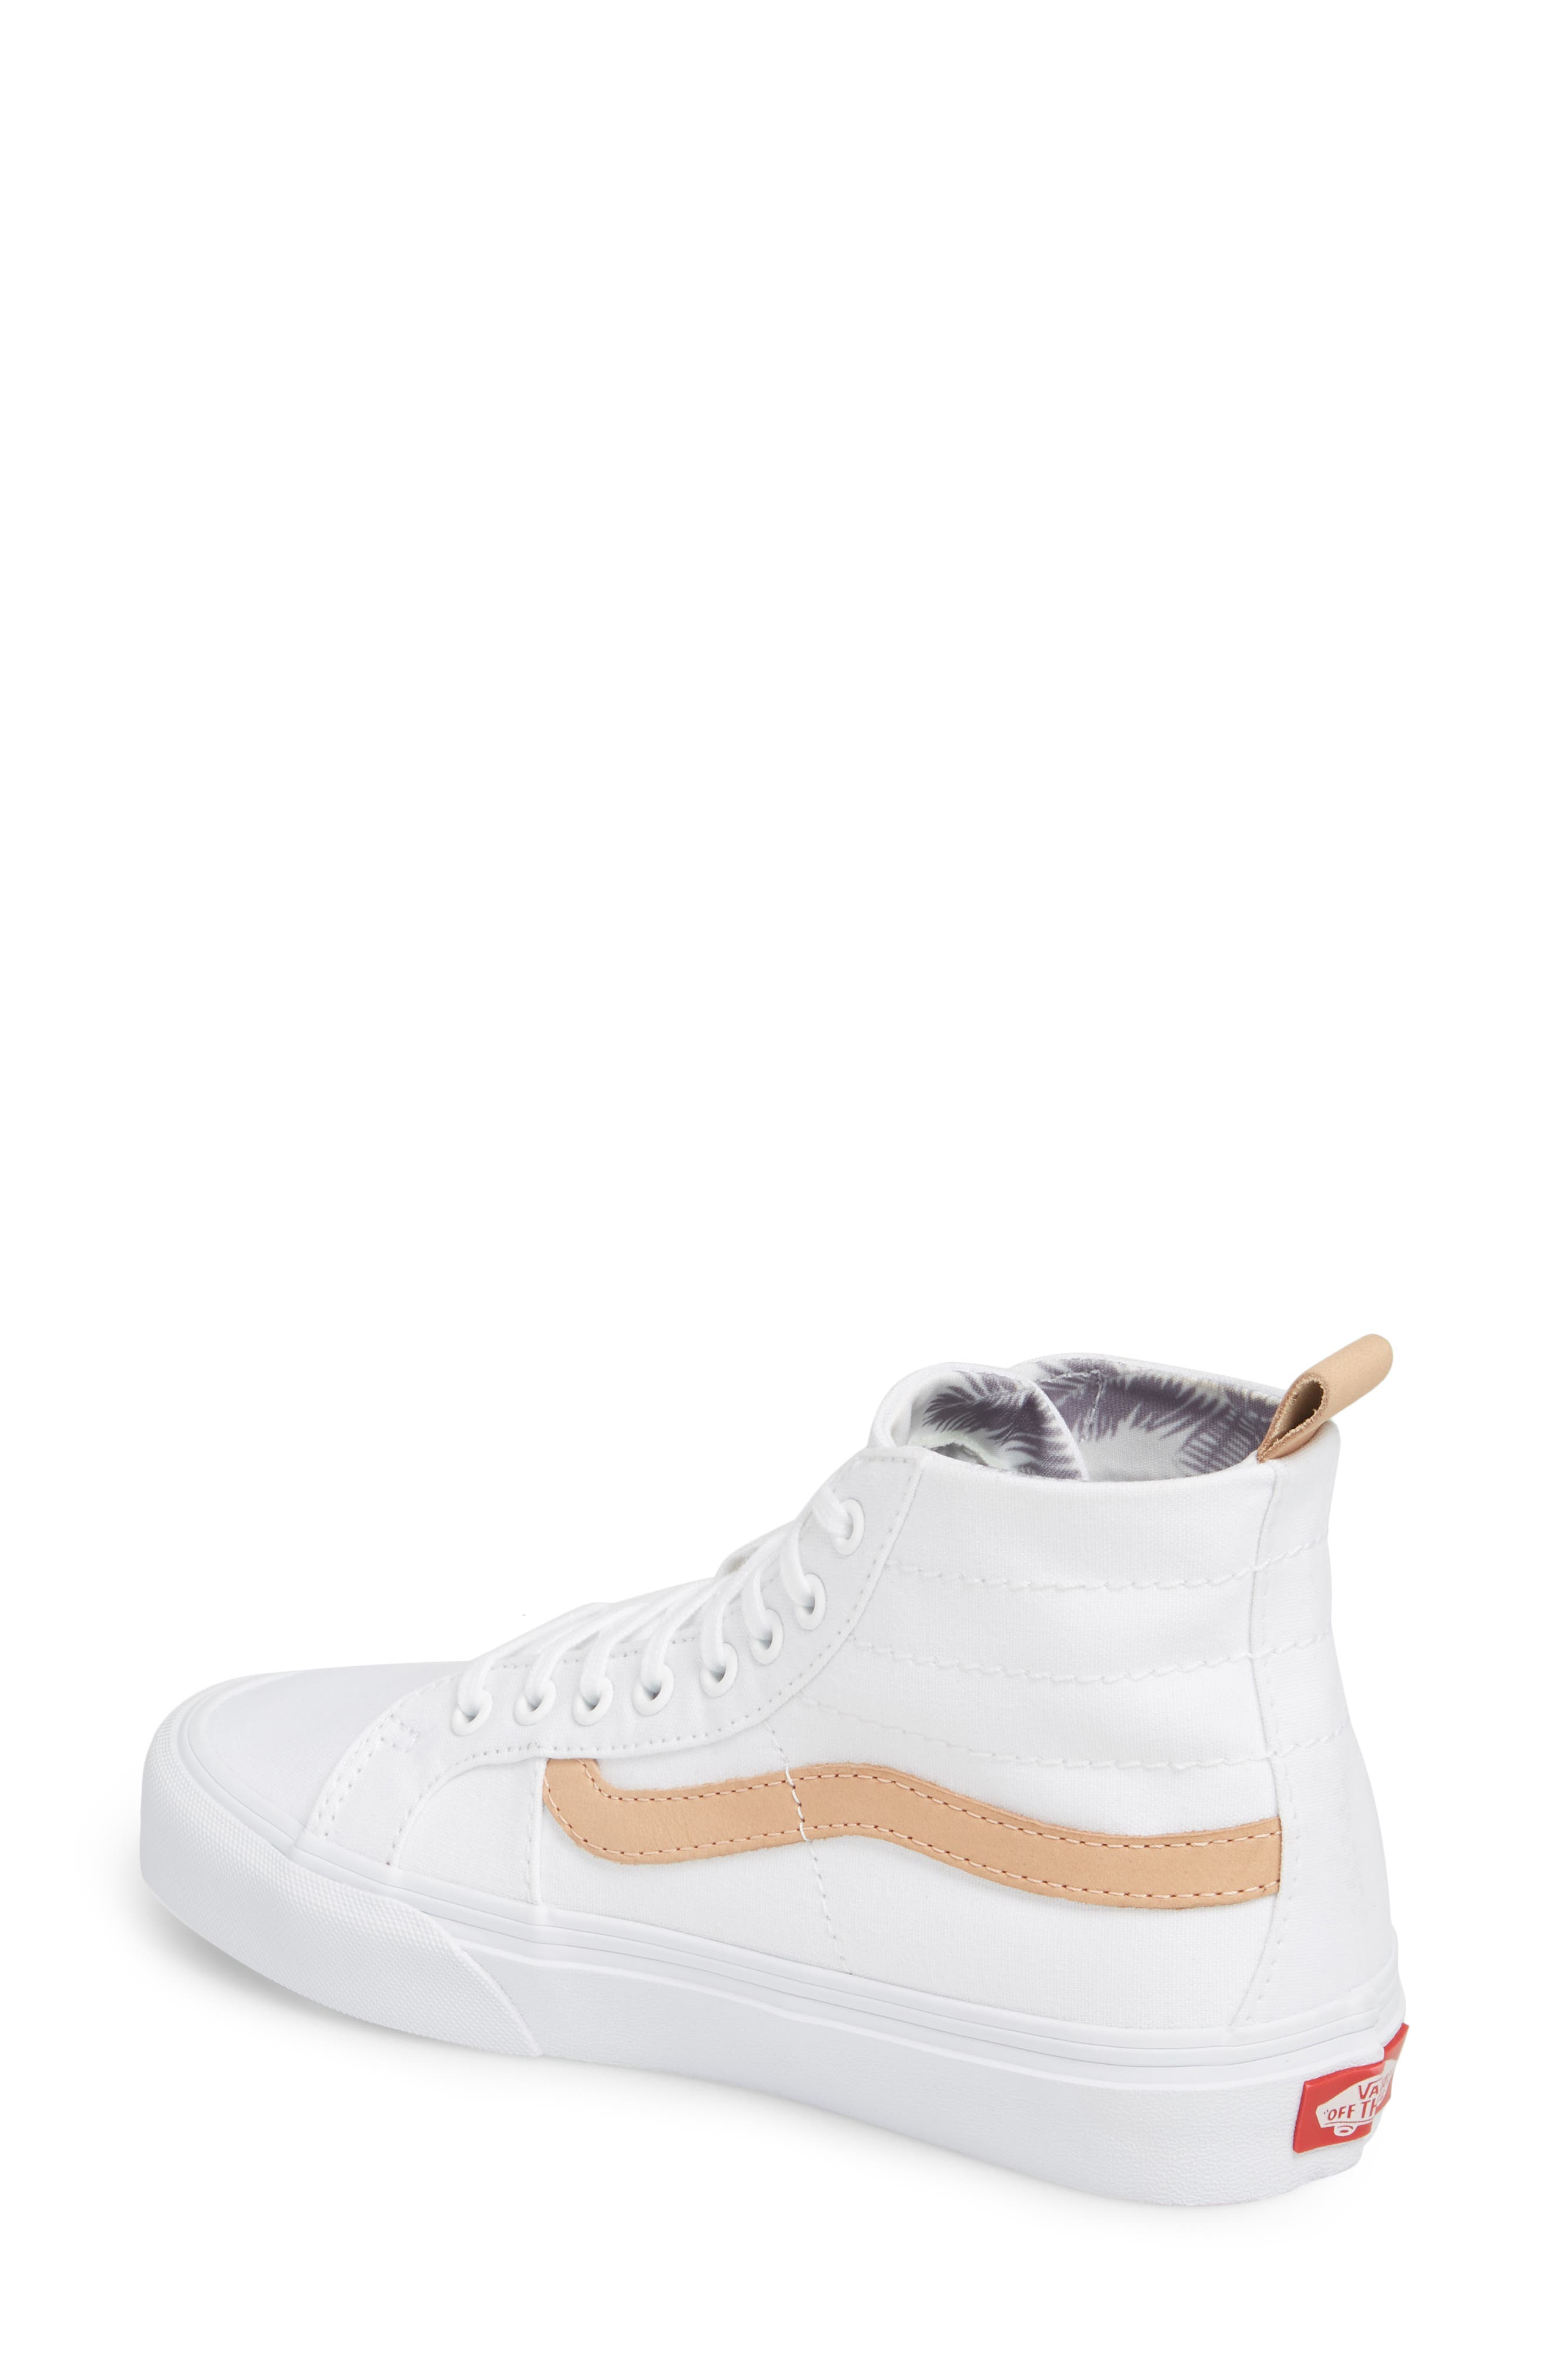 x Leila Hurst Sk8-Hi Decon SF Sneaker,                             Alternate thumbnail 2, color,                             100